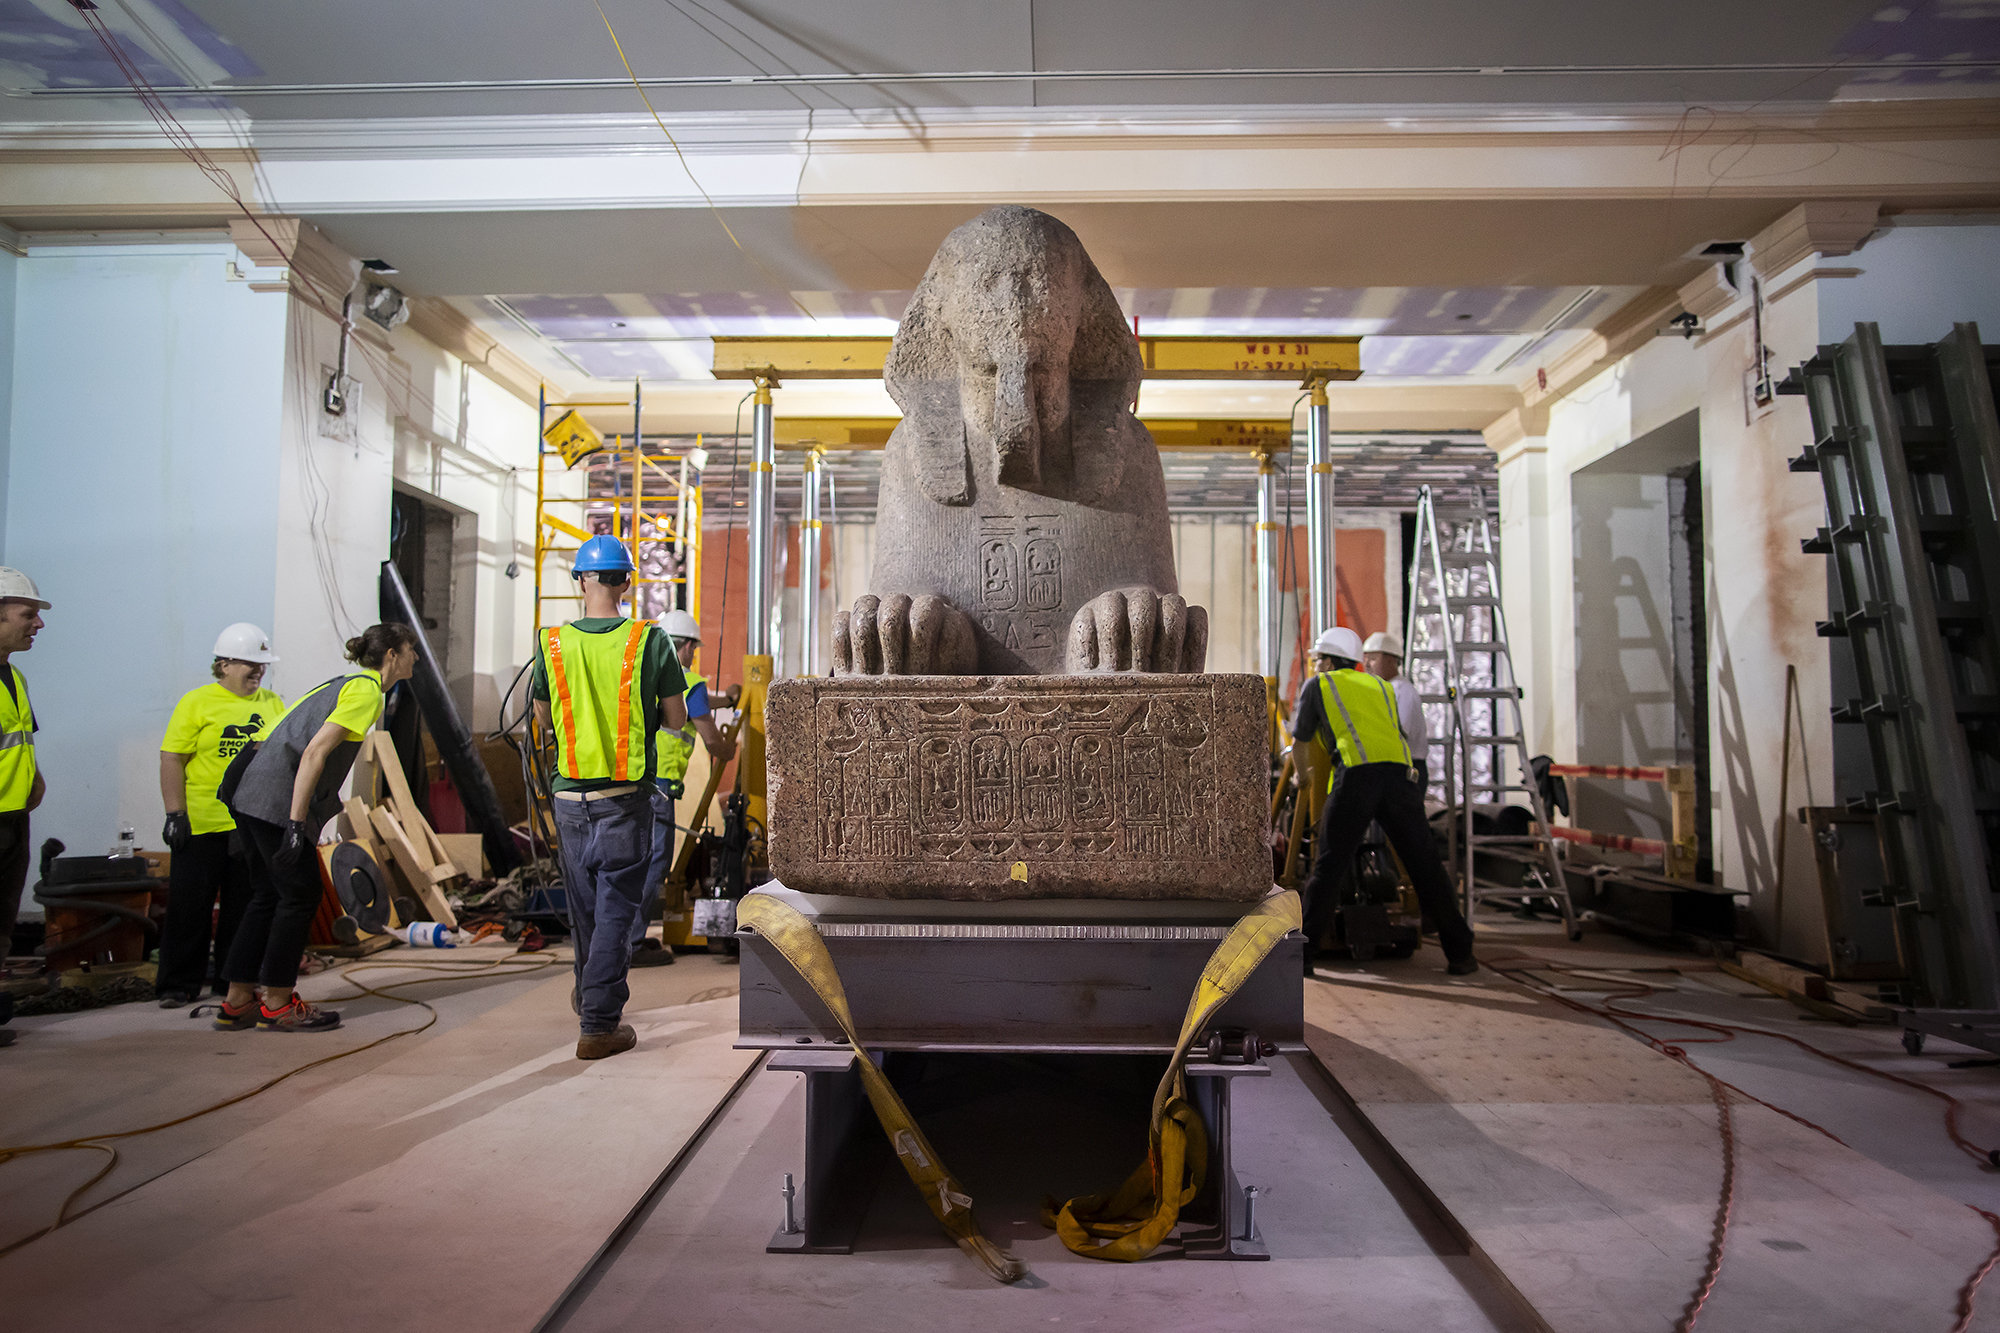 The secret to moving this ancient sphinx? Hoverboards